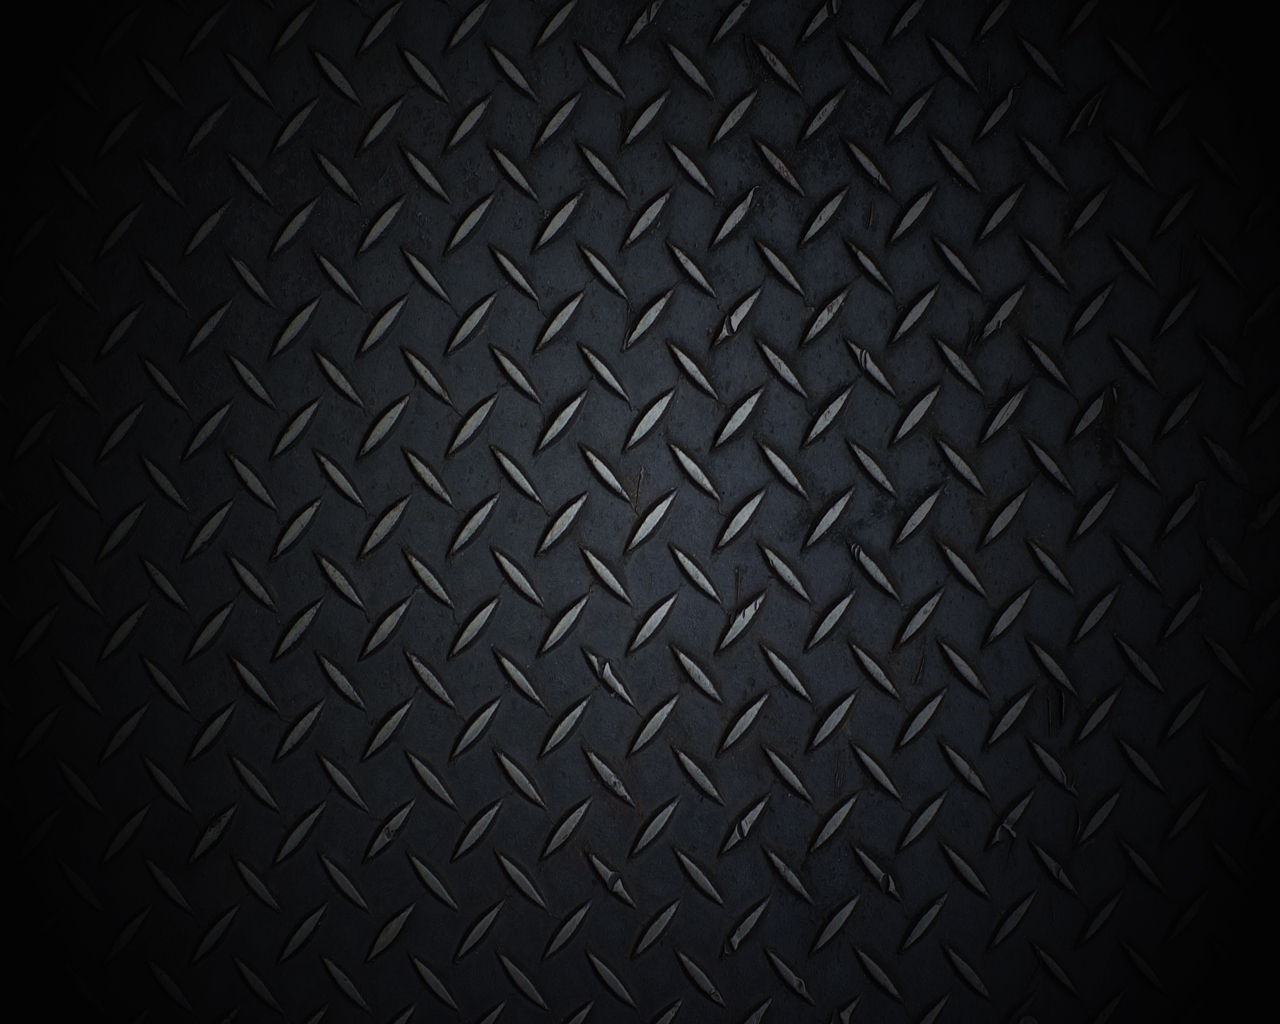 black steel diamond plate by rebstile HD Wallpaper - General (#